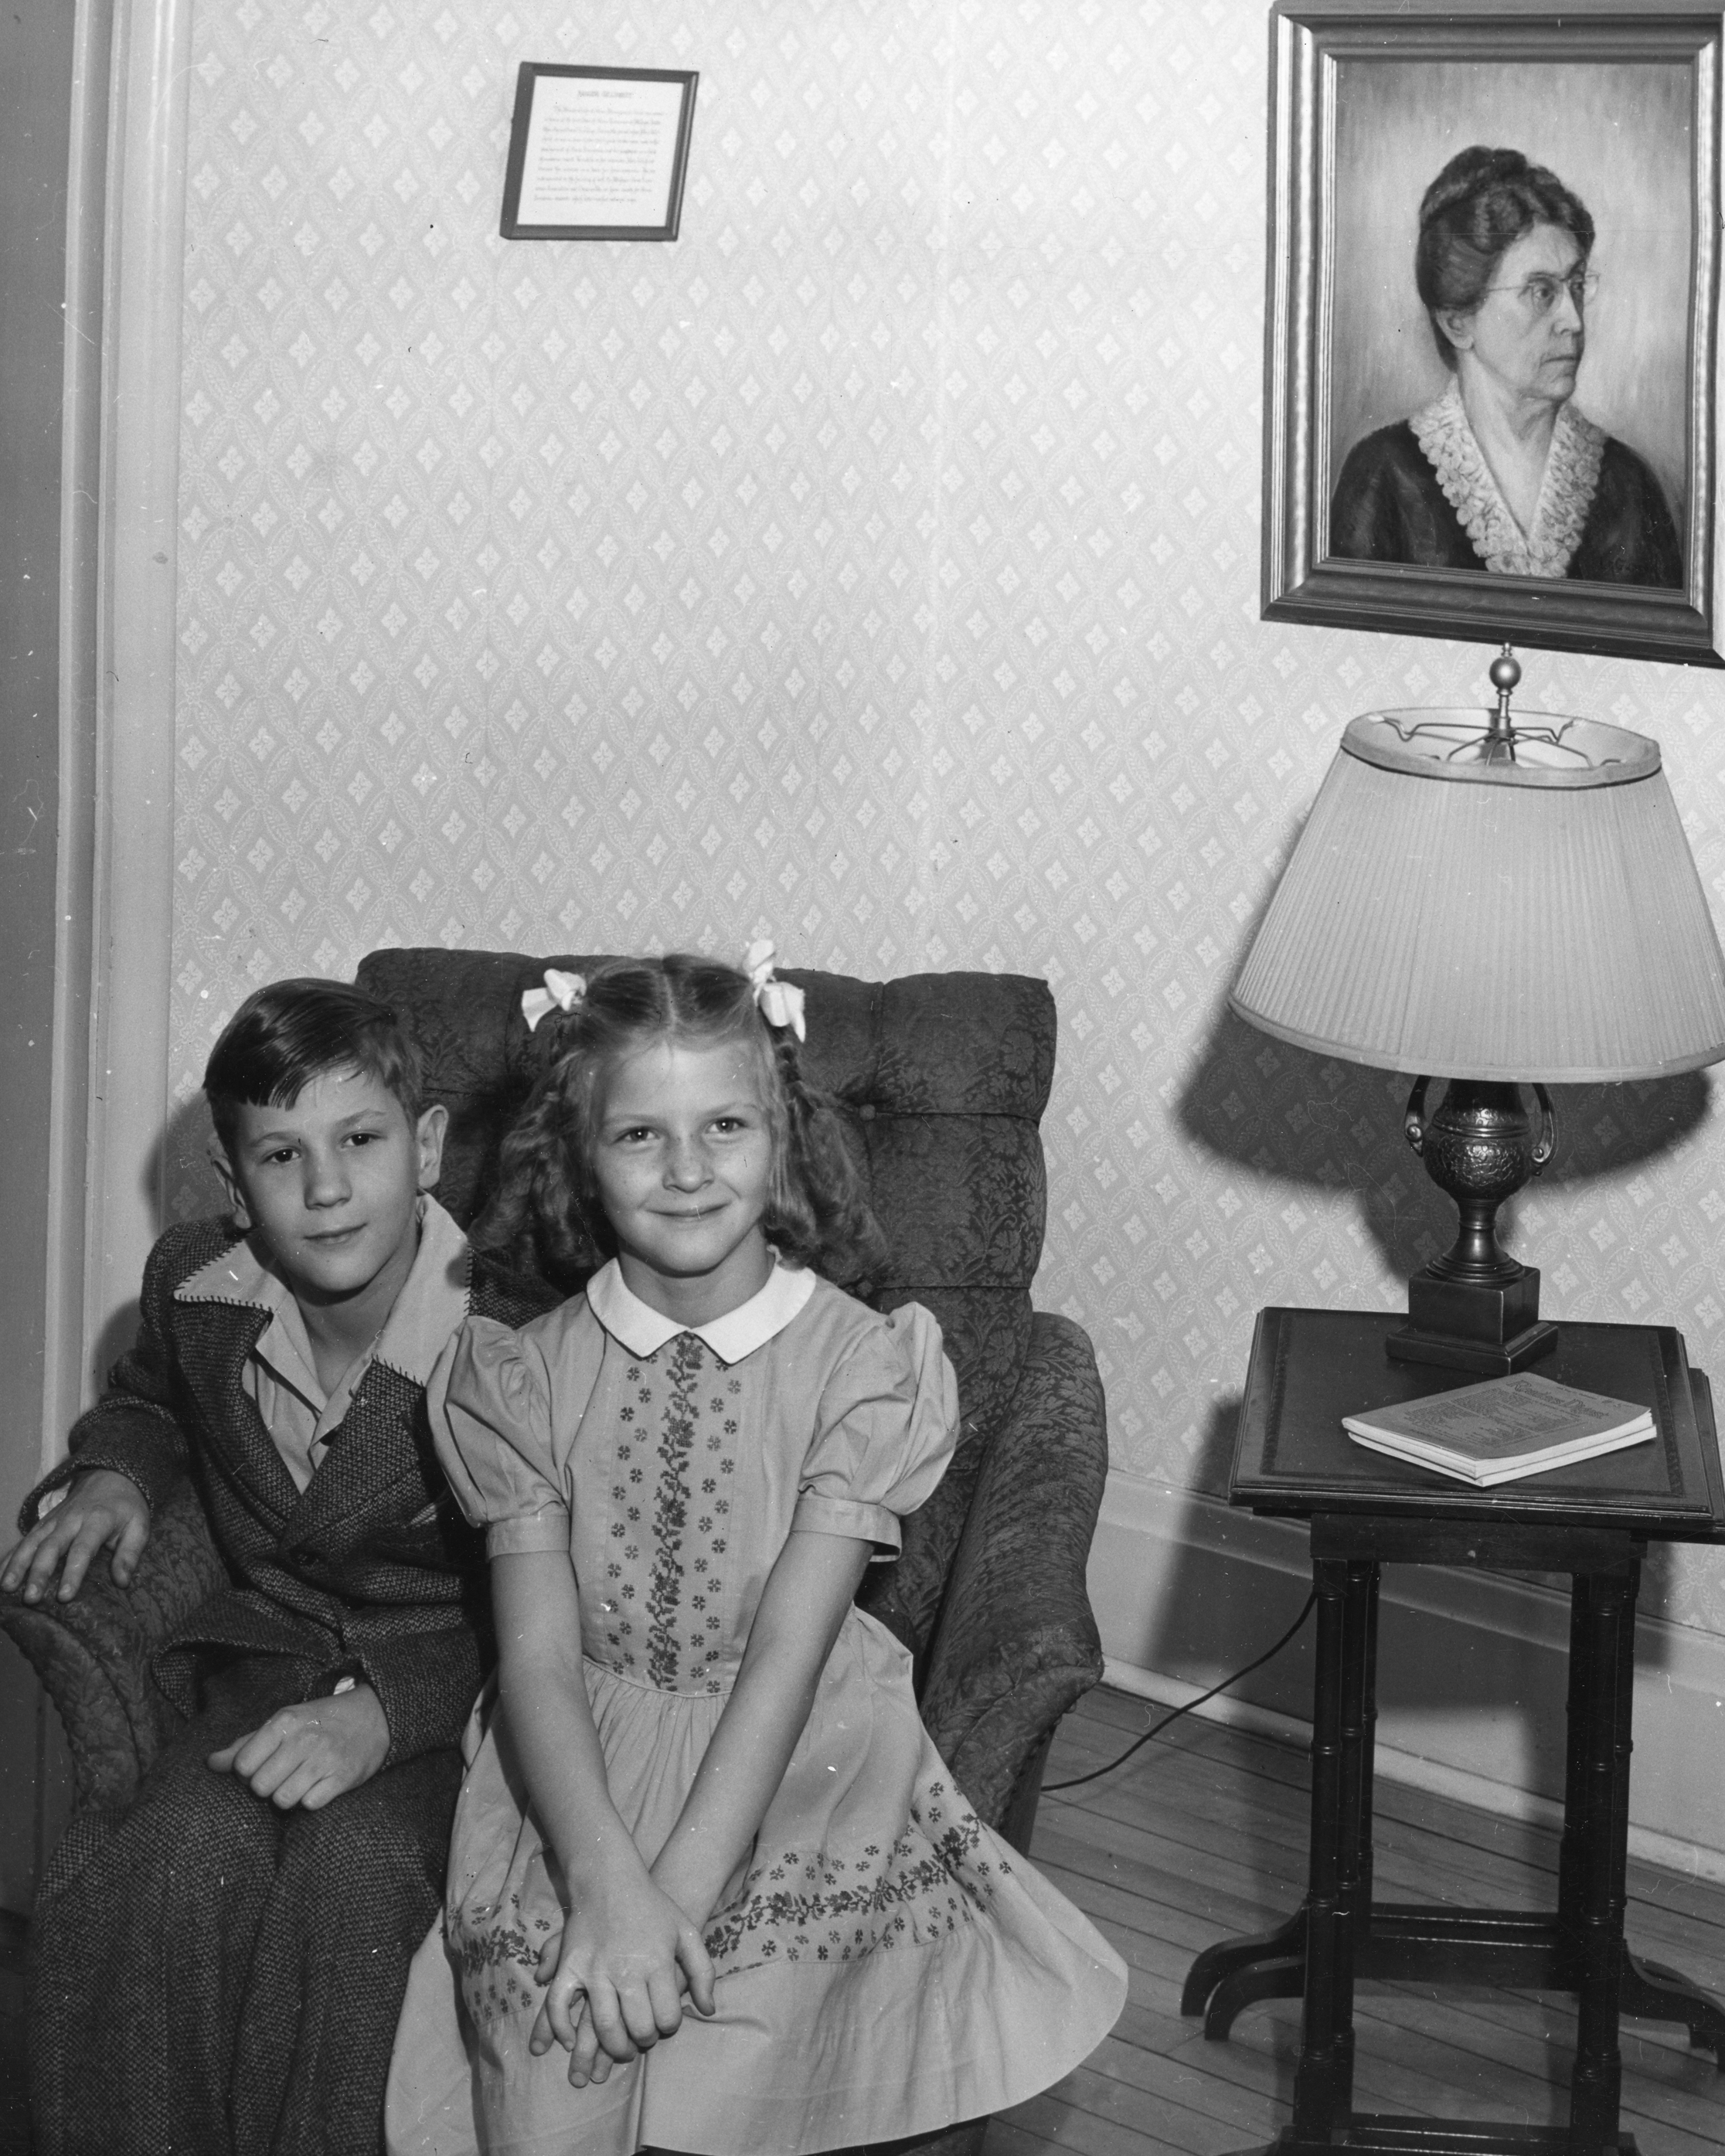 Frank and Margaret Thorp as children sitting on a chair, ca. 1940s